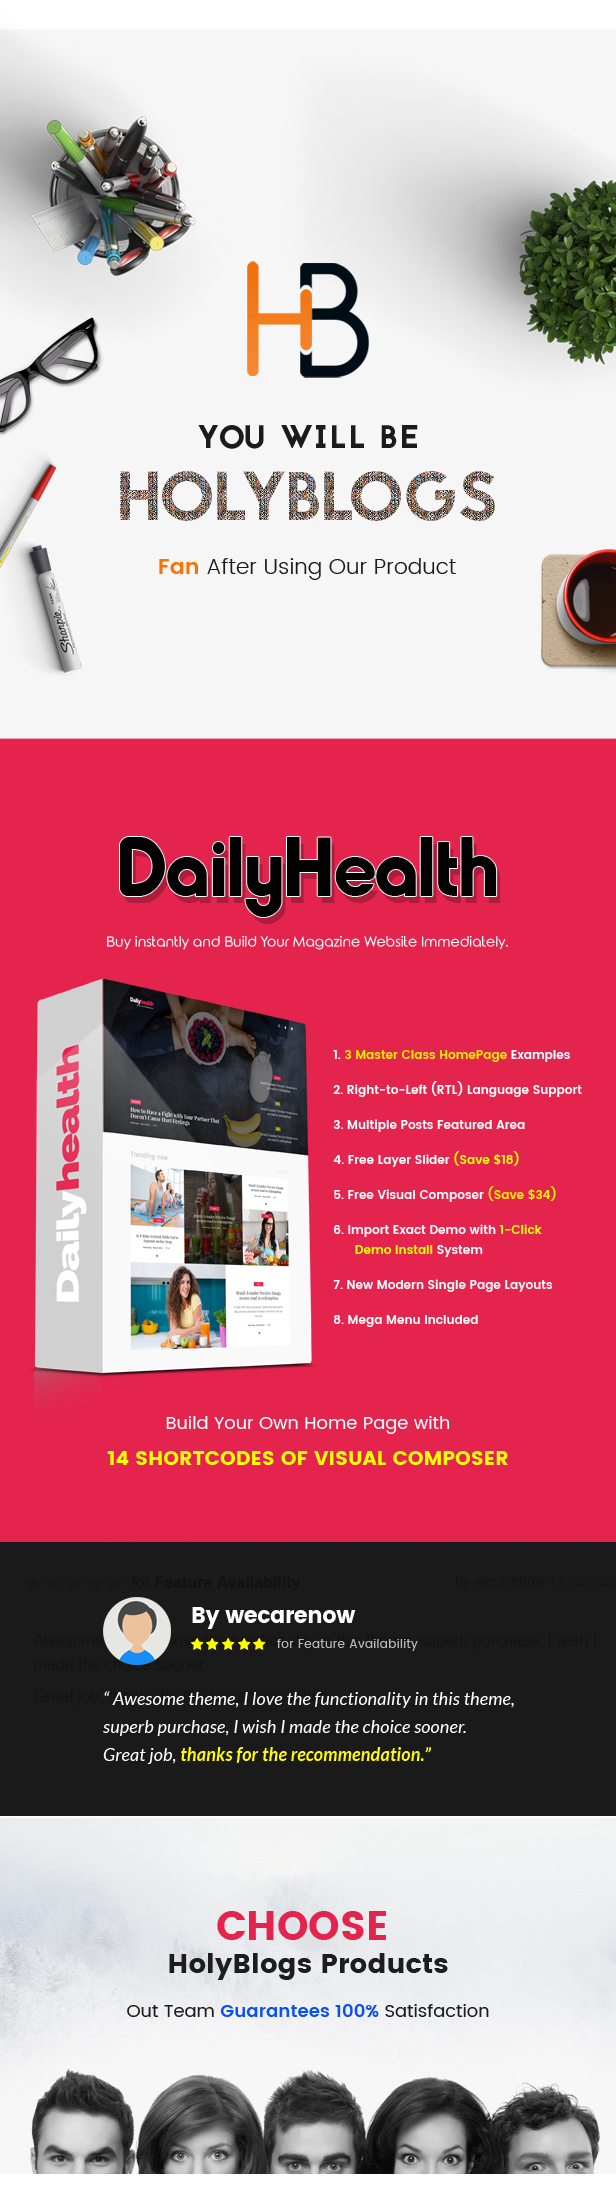 DailyHealth - A Professional Health and Medical Blog and Magazine WordPress Theme - 2